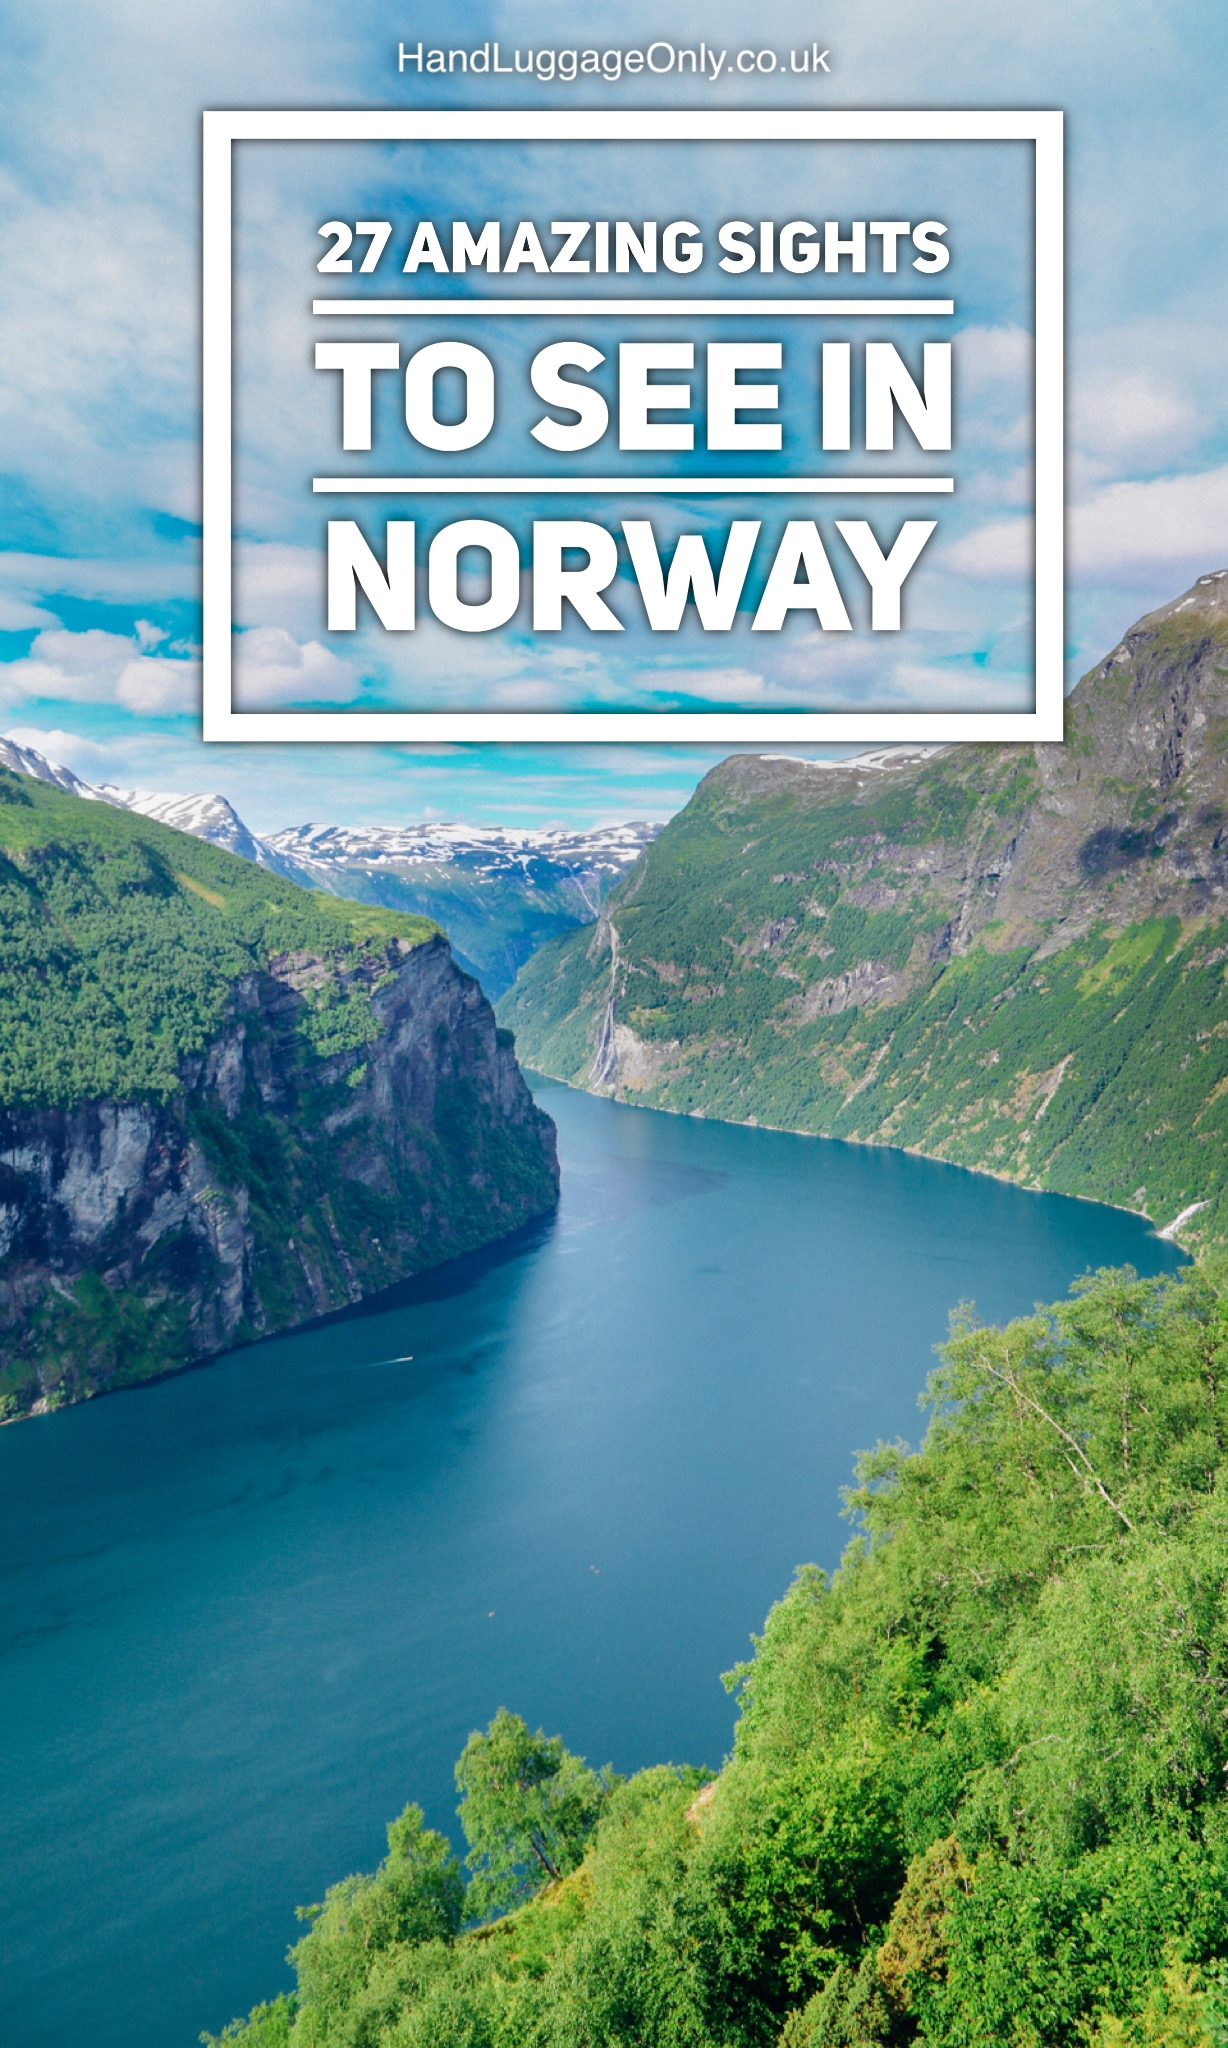 27 Amazing Sights You Have To See In Norway! (1)